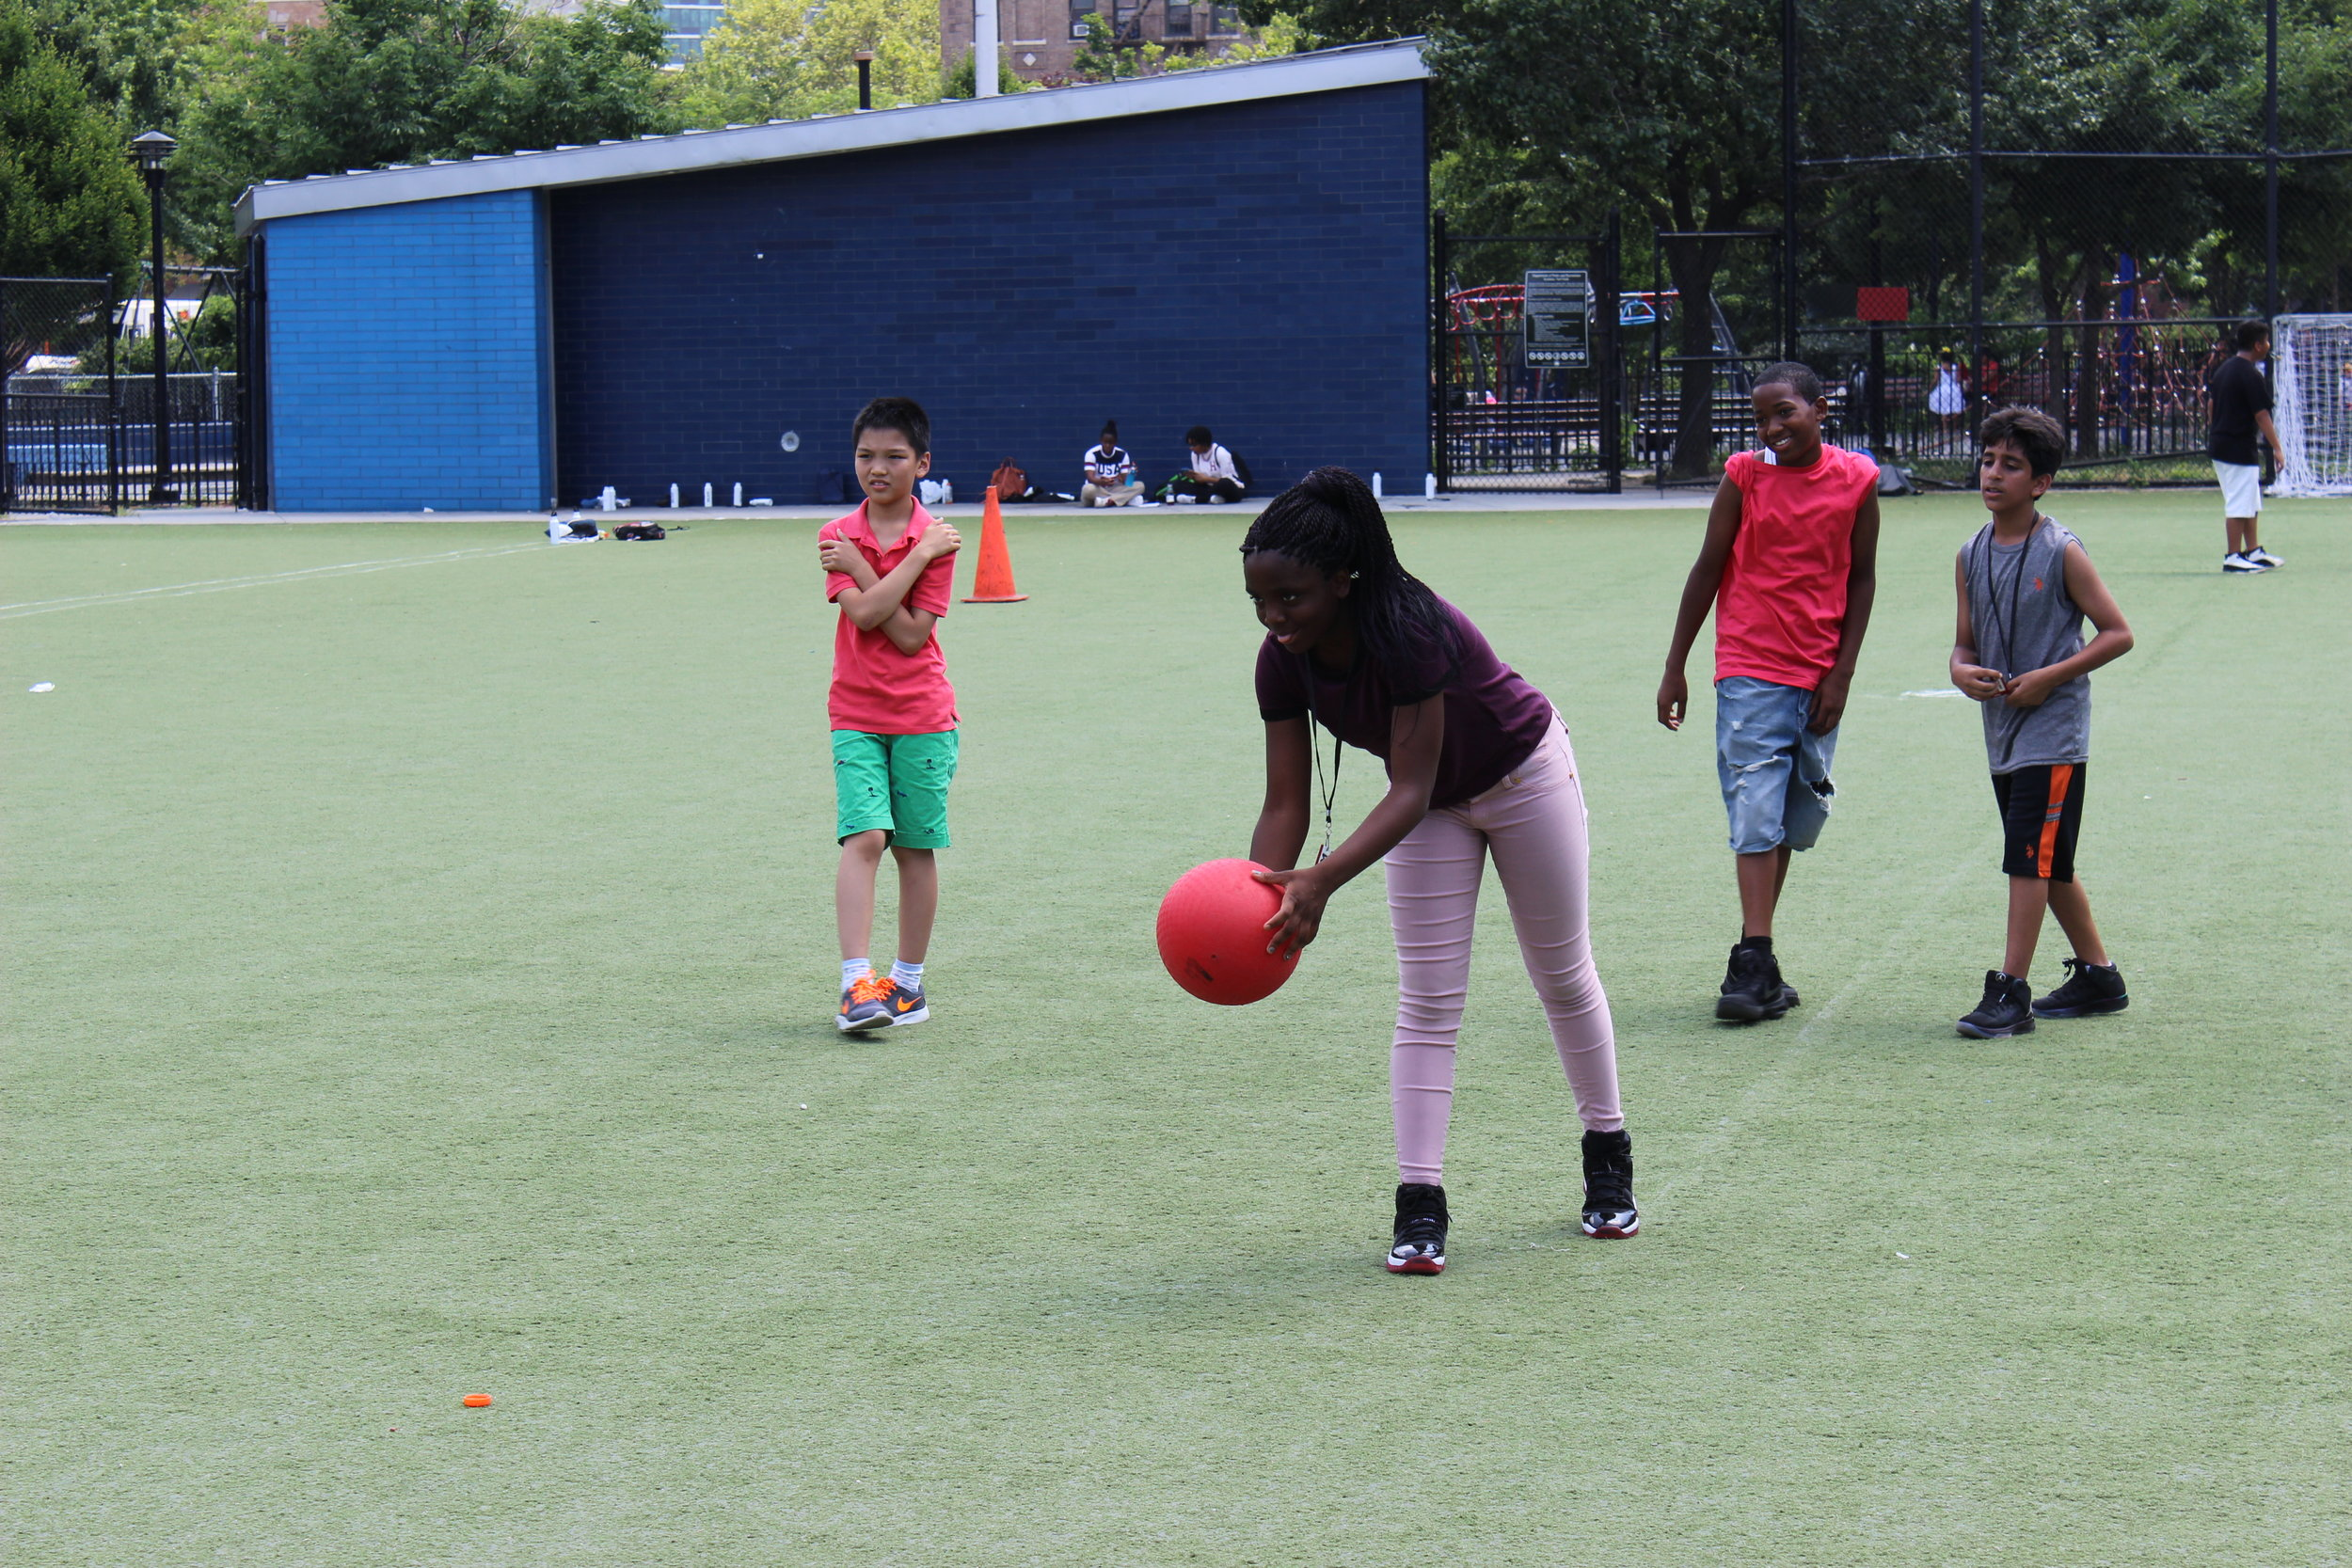 Jason, Brianna, Messiah, and Mohammad are enjoying an exciting game of Kickball.